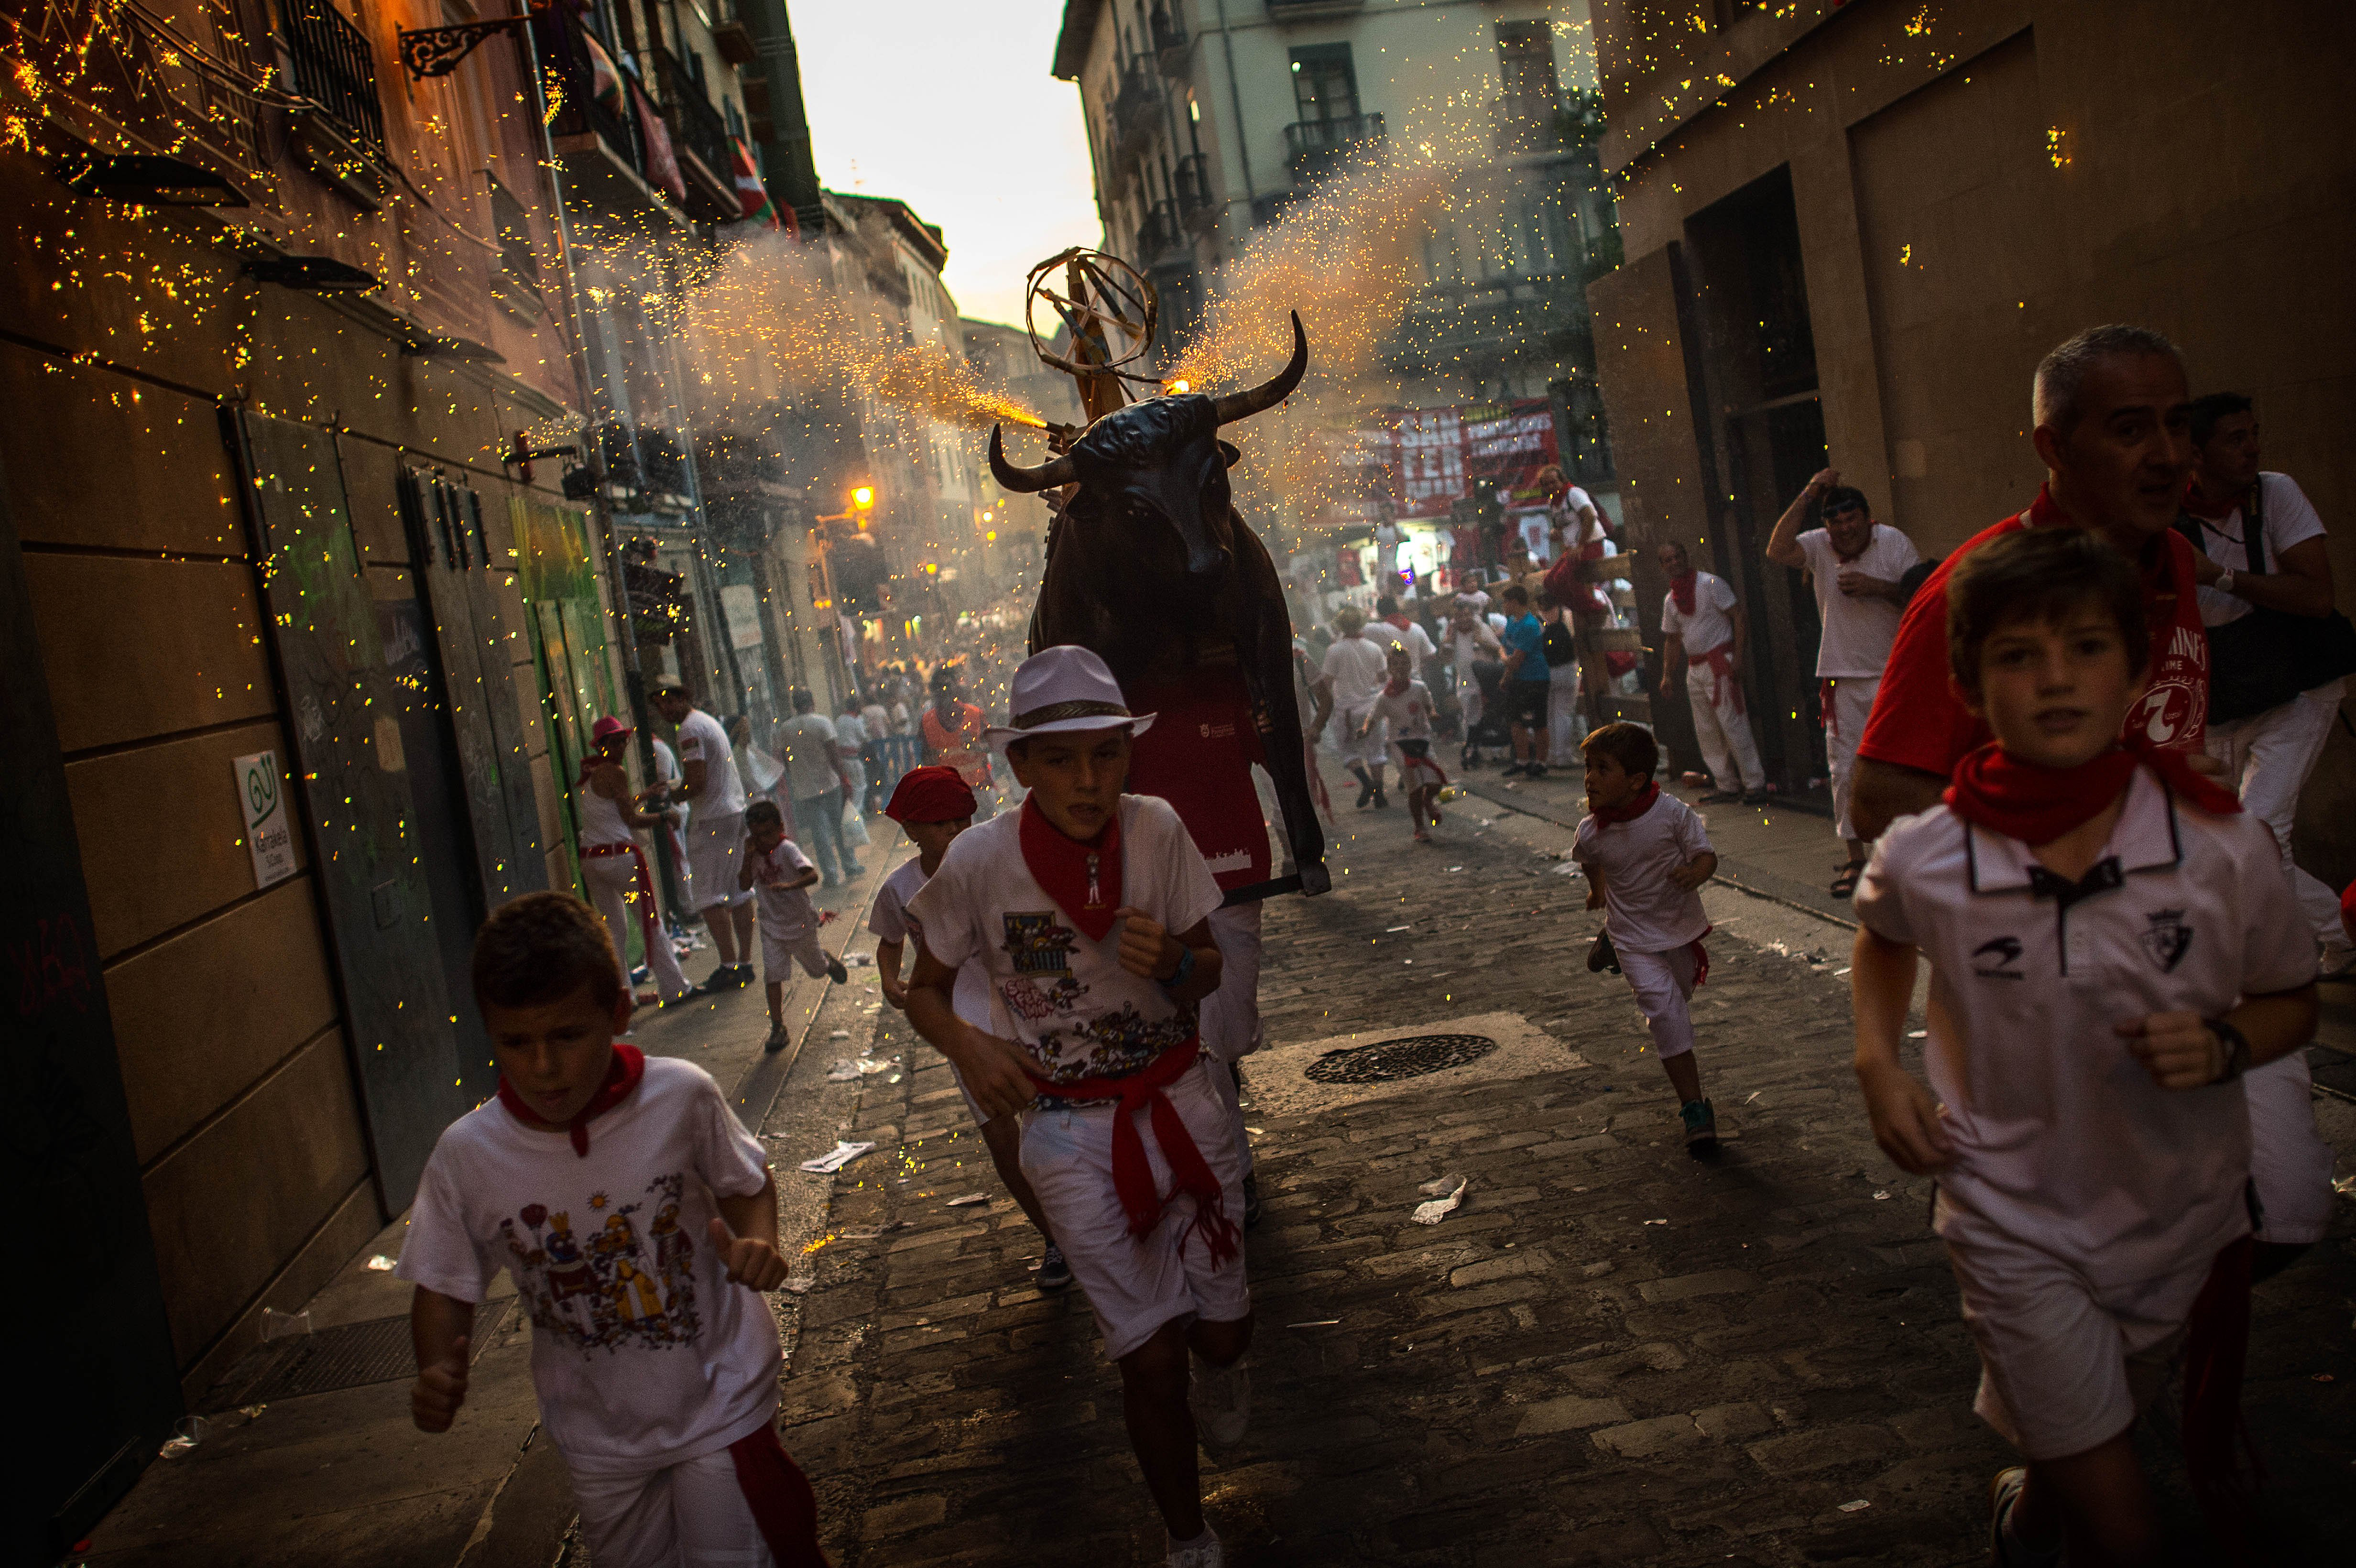 Revellers and children are 'chased' by the 'Toro de Fuego' (Flaming bull) as it runs the streets during the opening day of the San Fermin Running of the Bulls fiesta on July 6, 2015 in Pamplona, Spain.